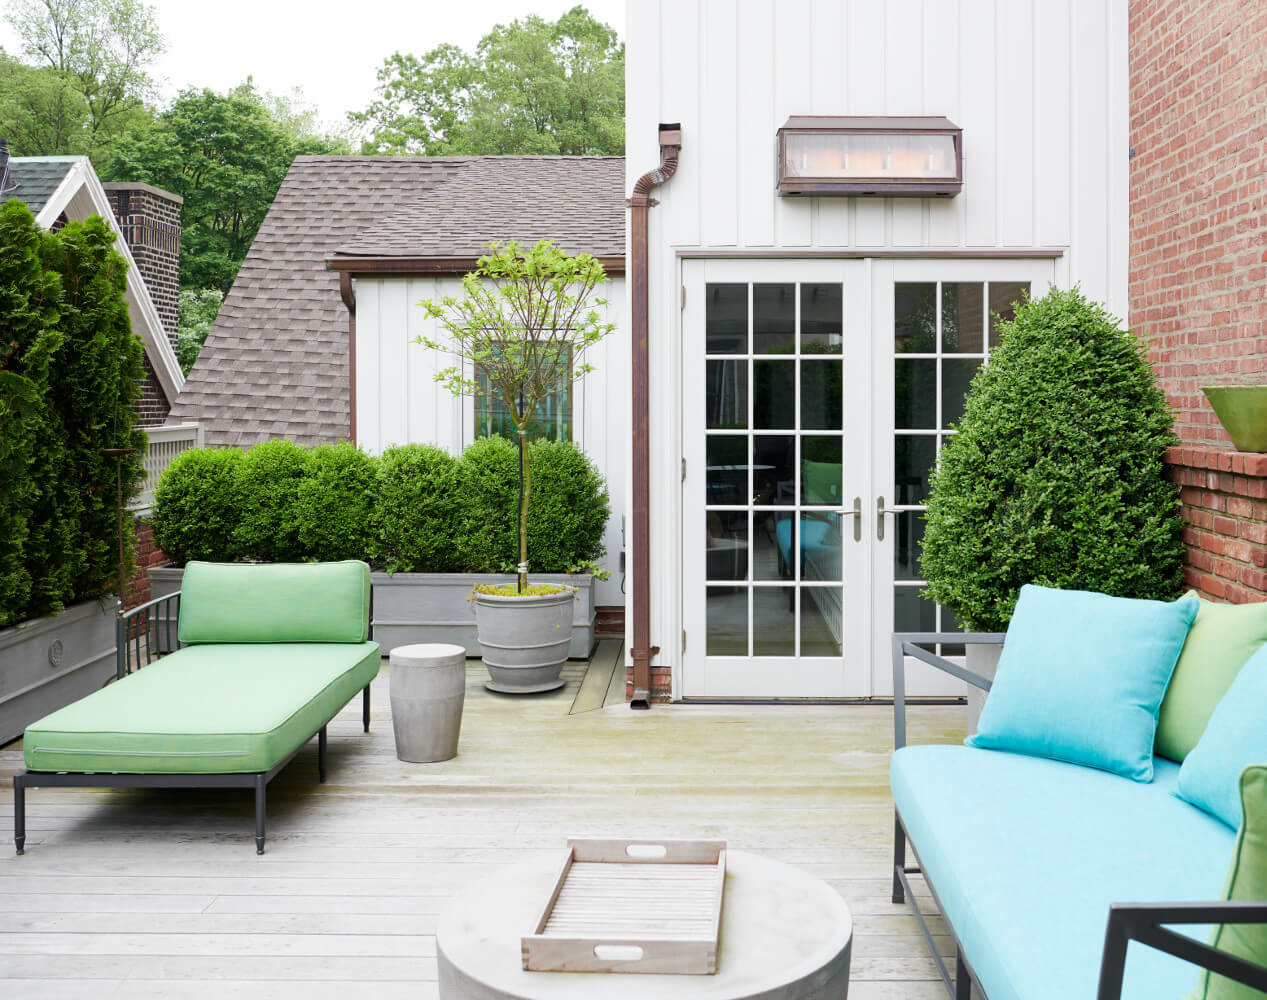 The small rooftop addition for this Prospect Park West twin house conceals air conditioning equipment while creating a graceful passage to a lushly planted roof deck.